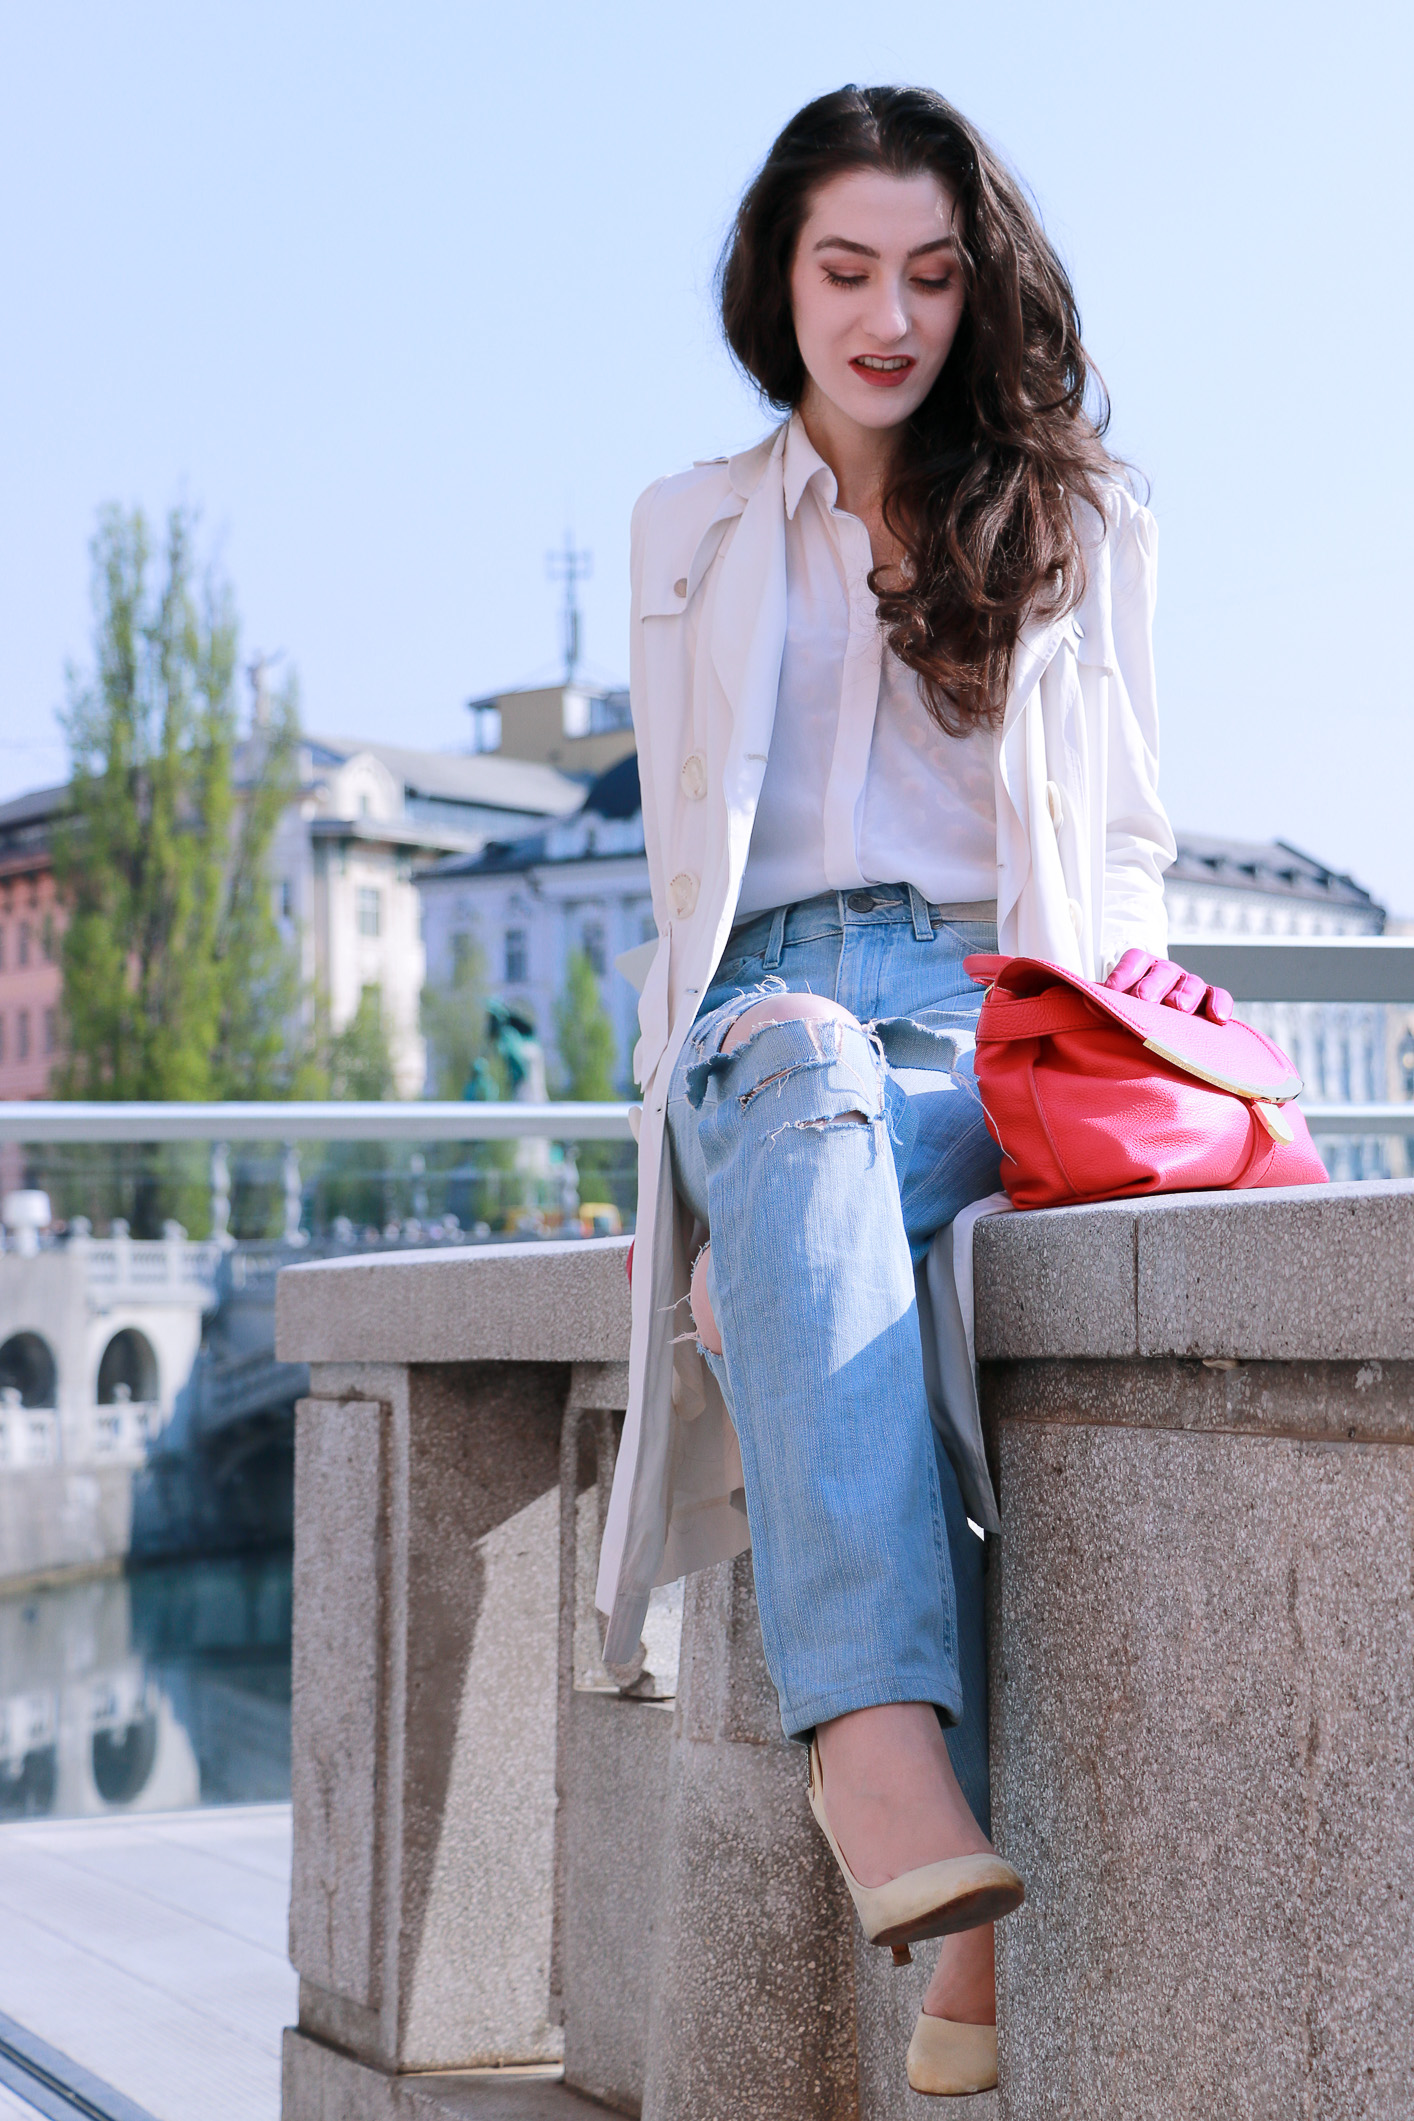 Fashion blogger Veronika Lipar of Brunette From Wall Street sharing how to wear ripped jeans this spring